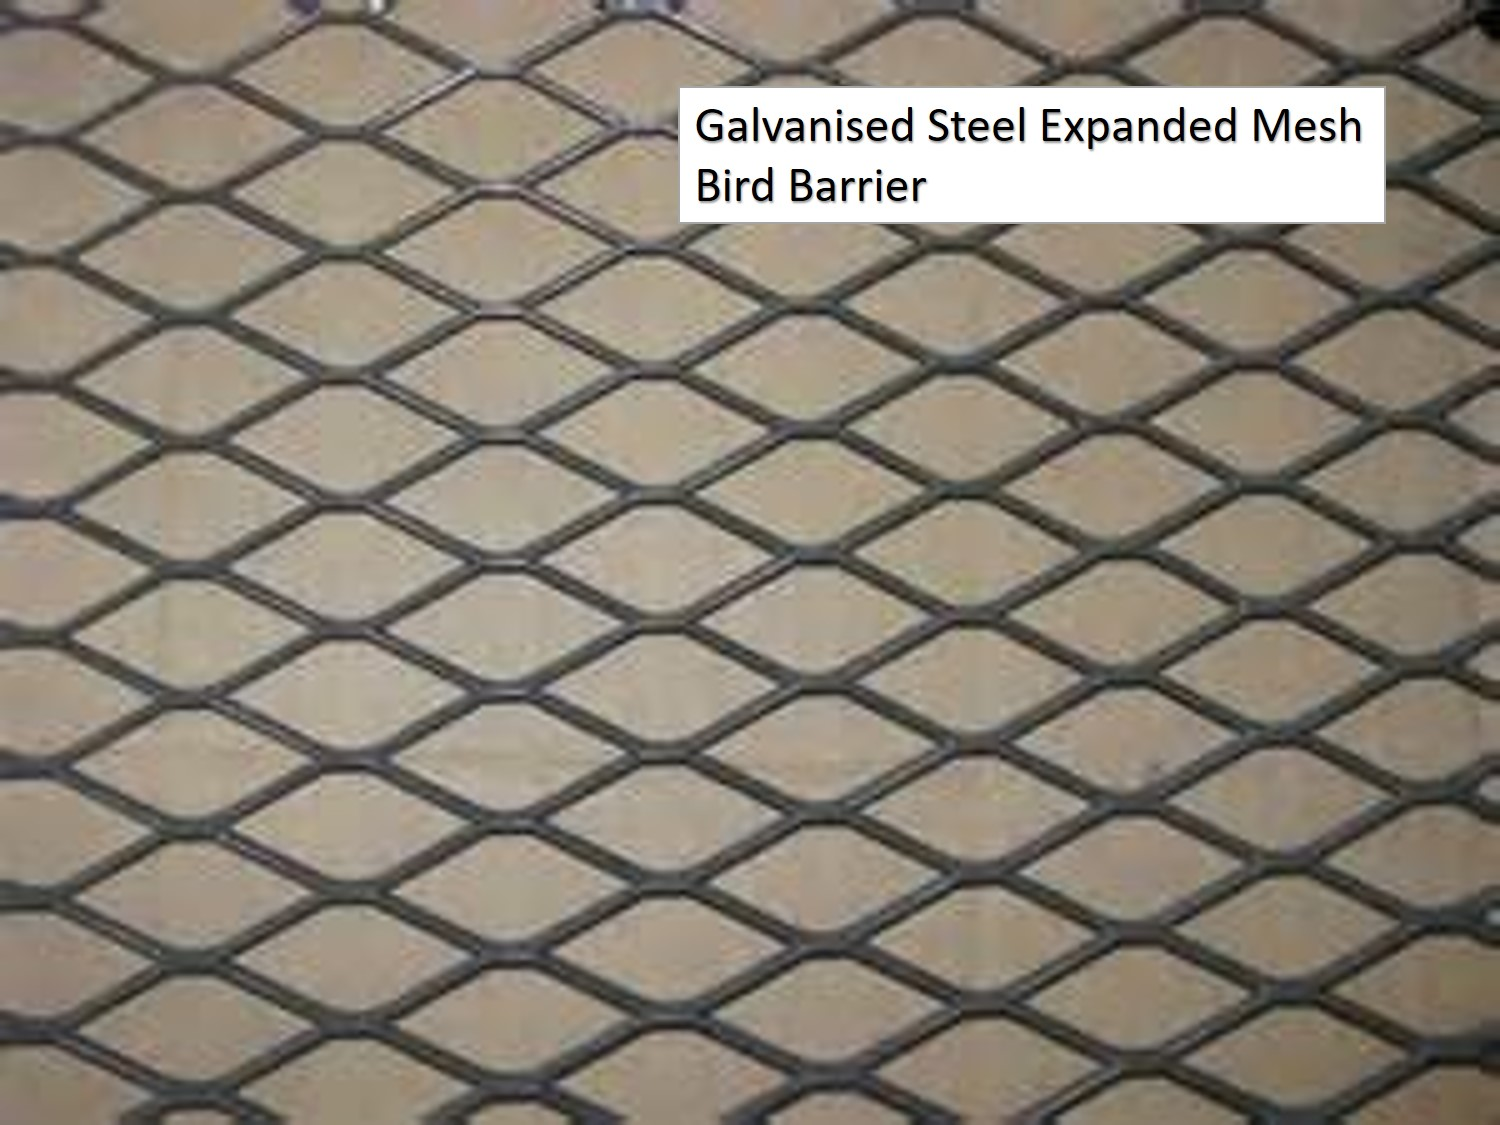 Galvanised Steel Expanded Mesh Bird Barrier